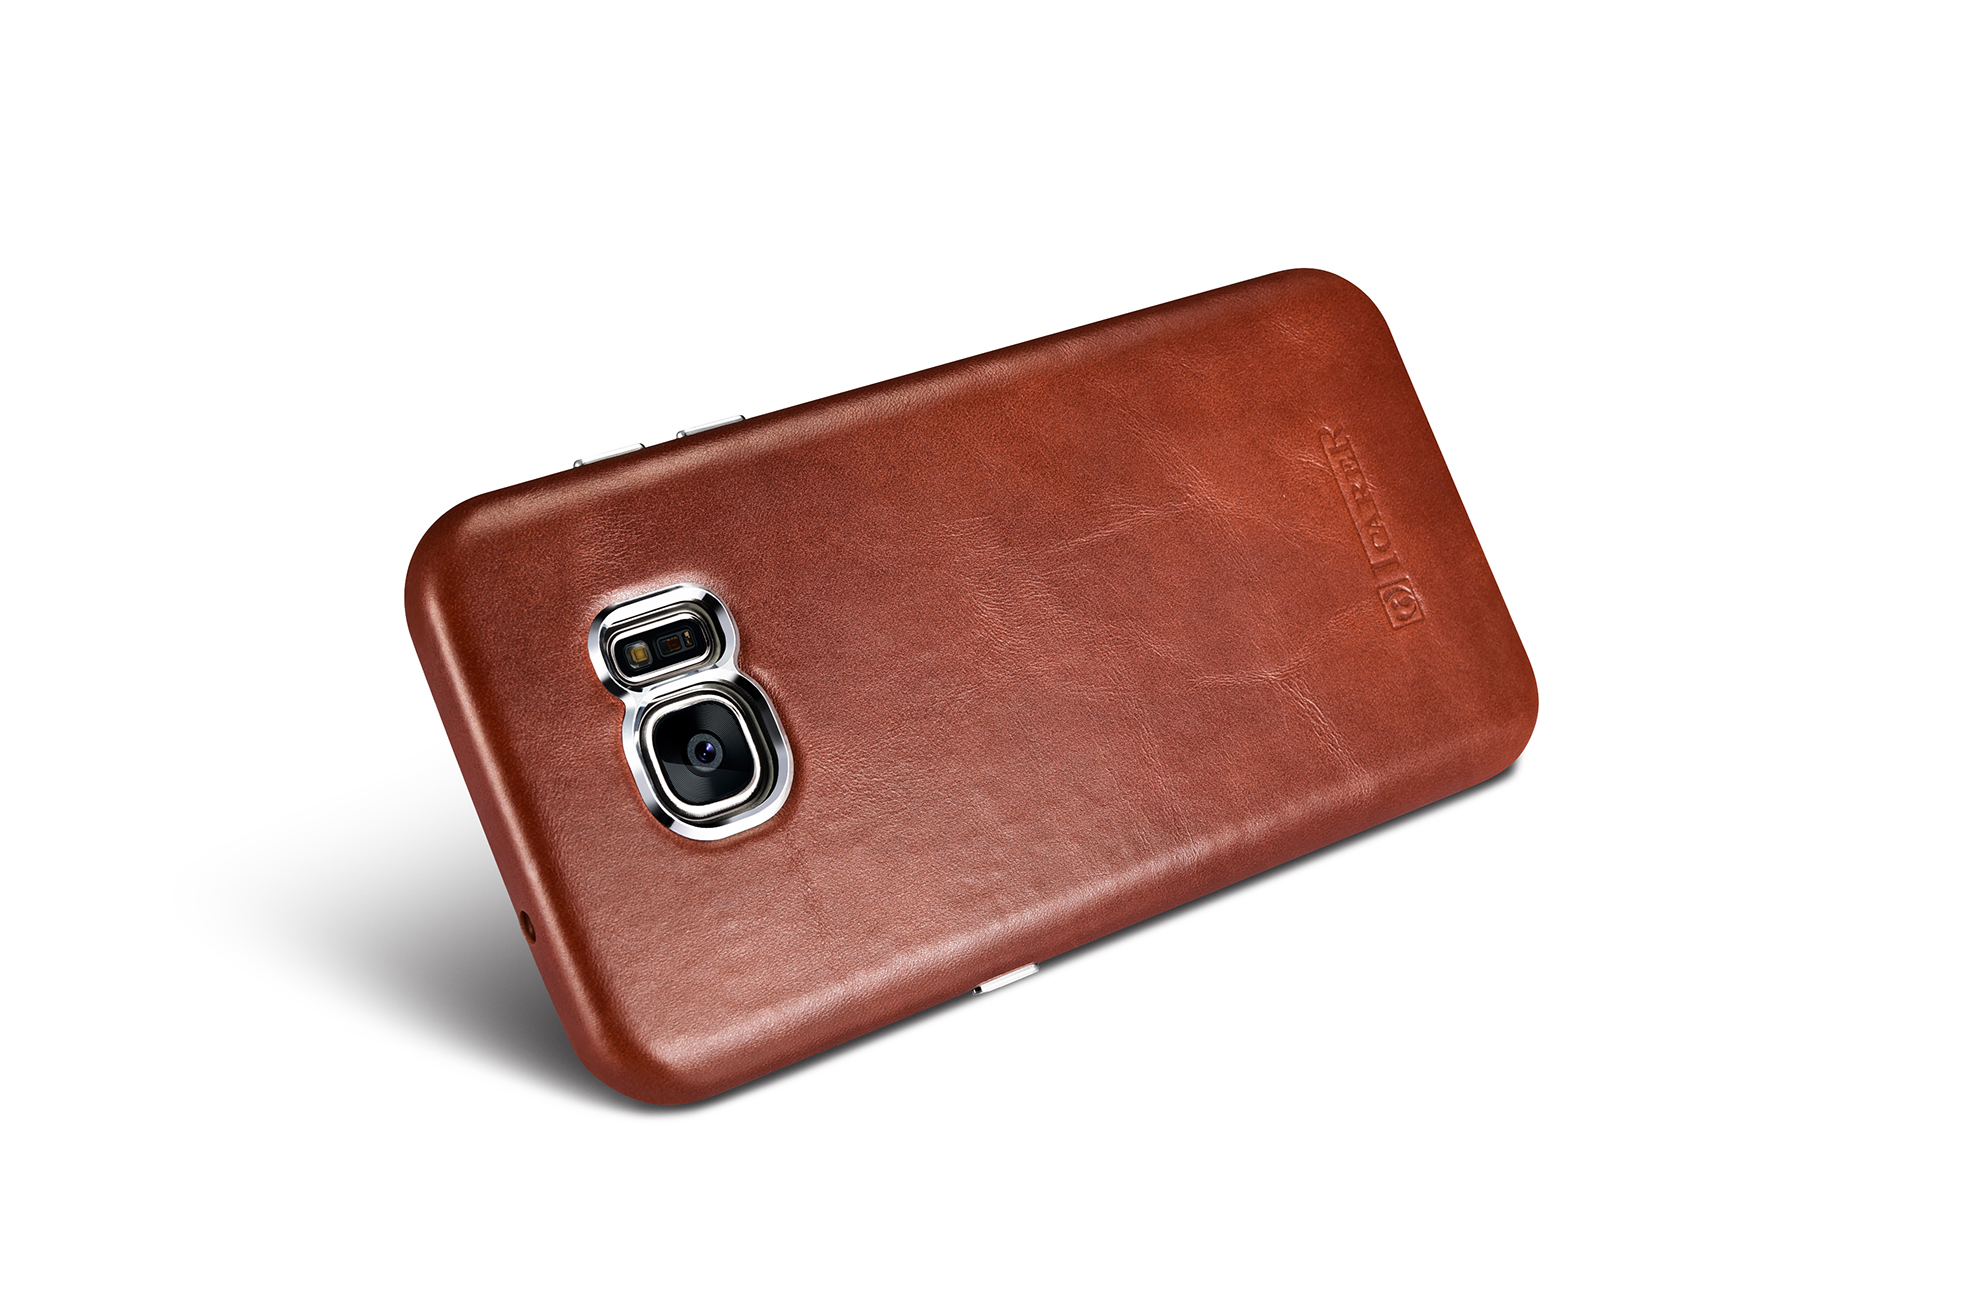 quality design aee8e b93d1 Samsung Galaxy S7 Edge Vintage Back Cover Series Genuine Leather Case Brown